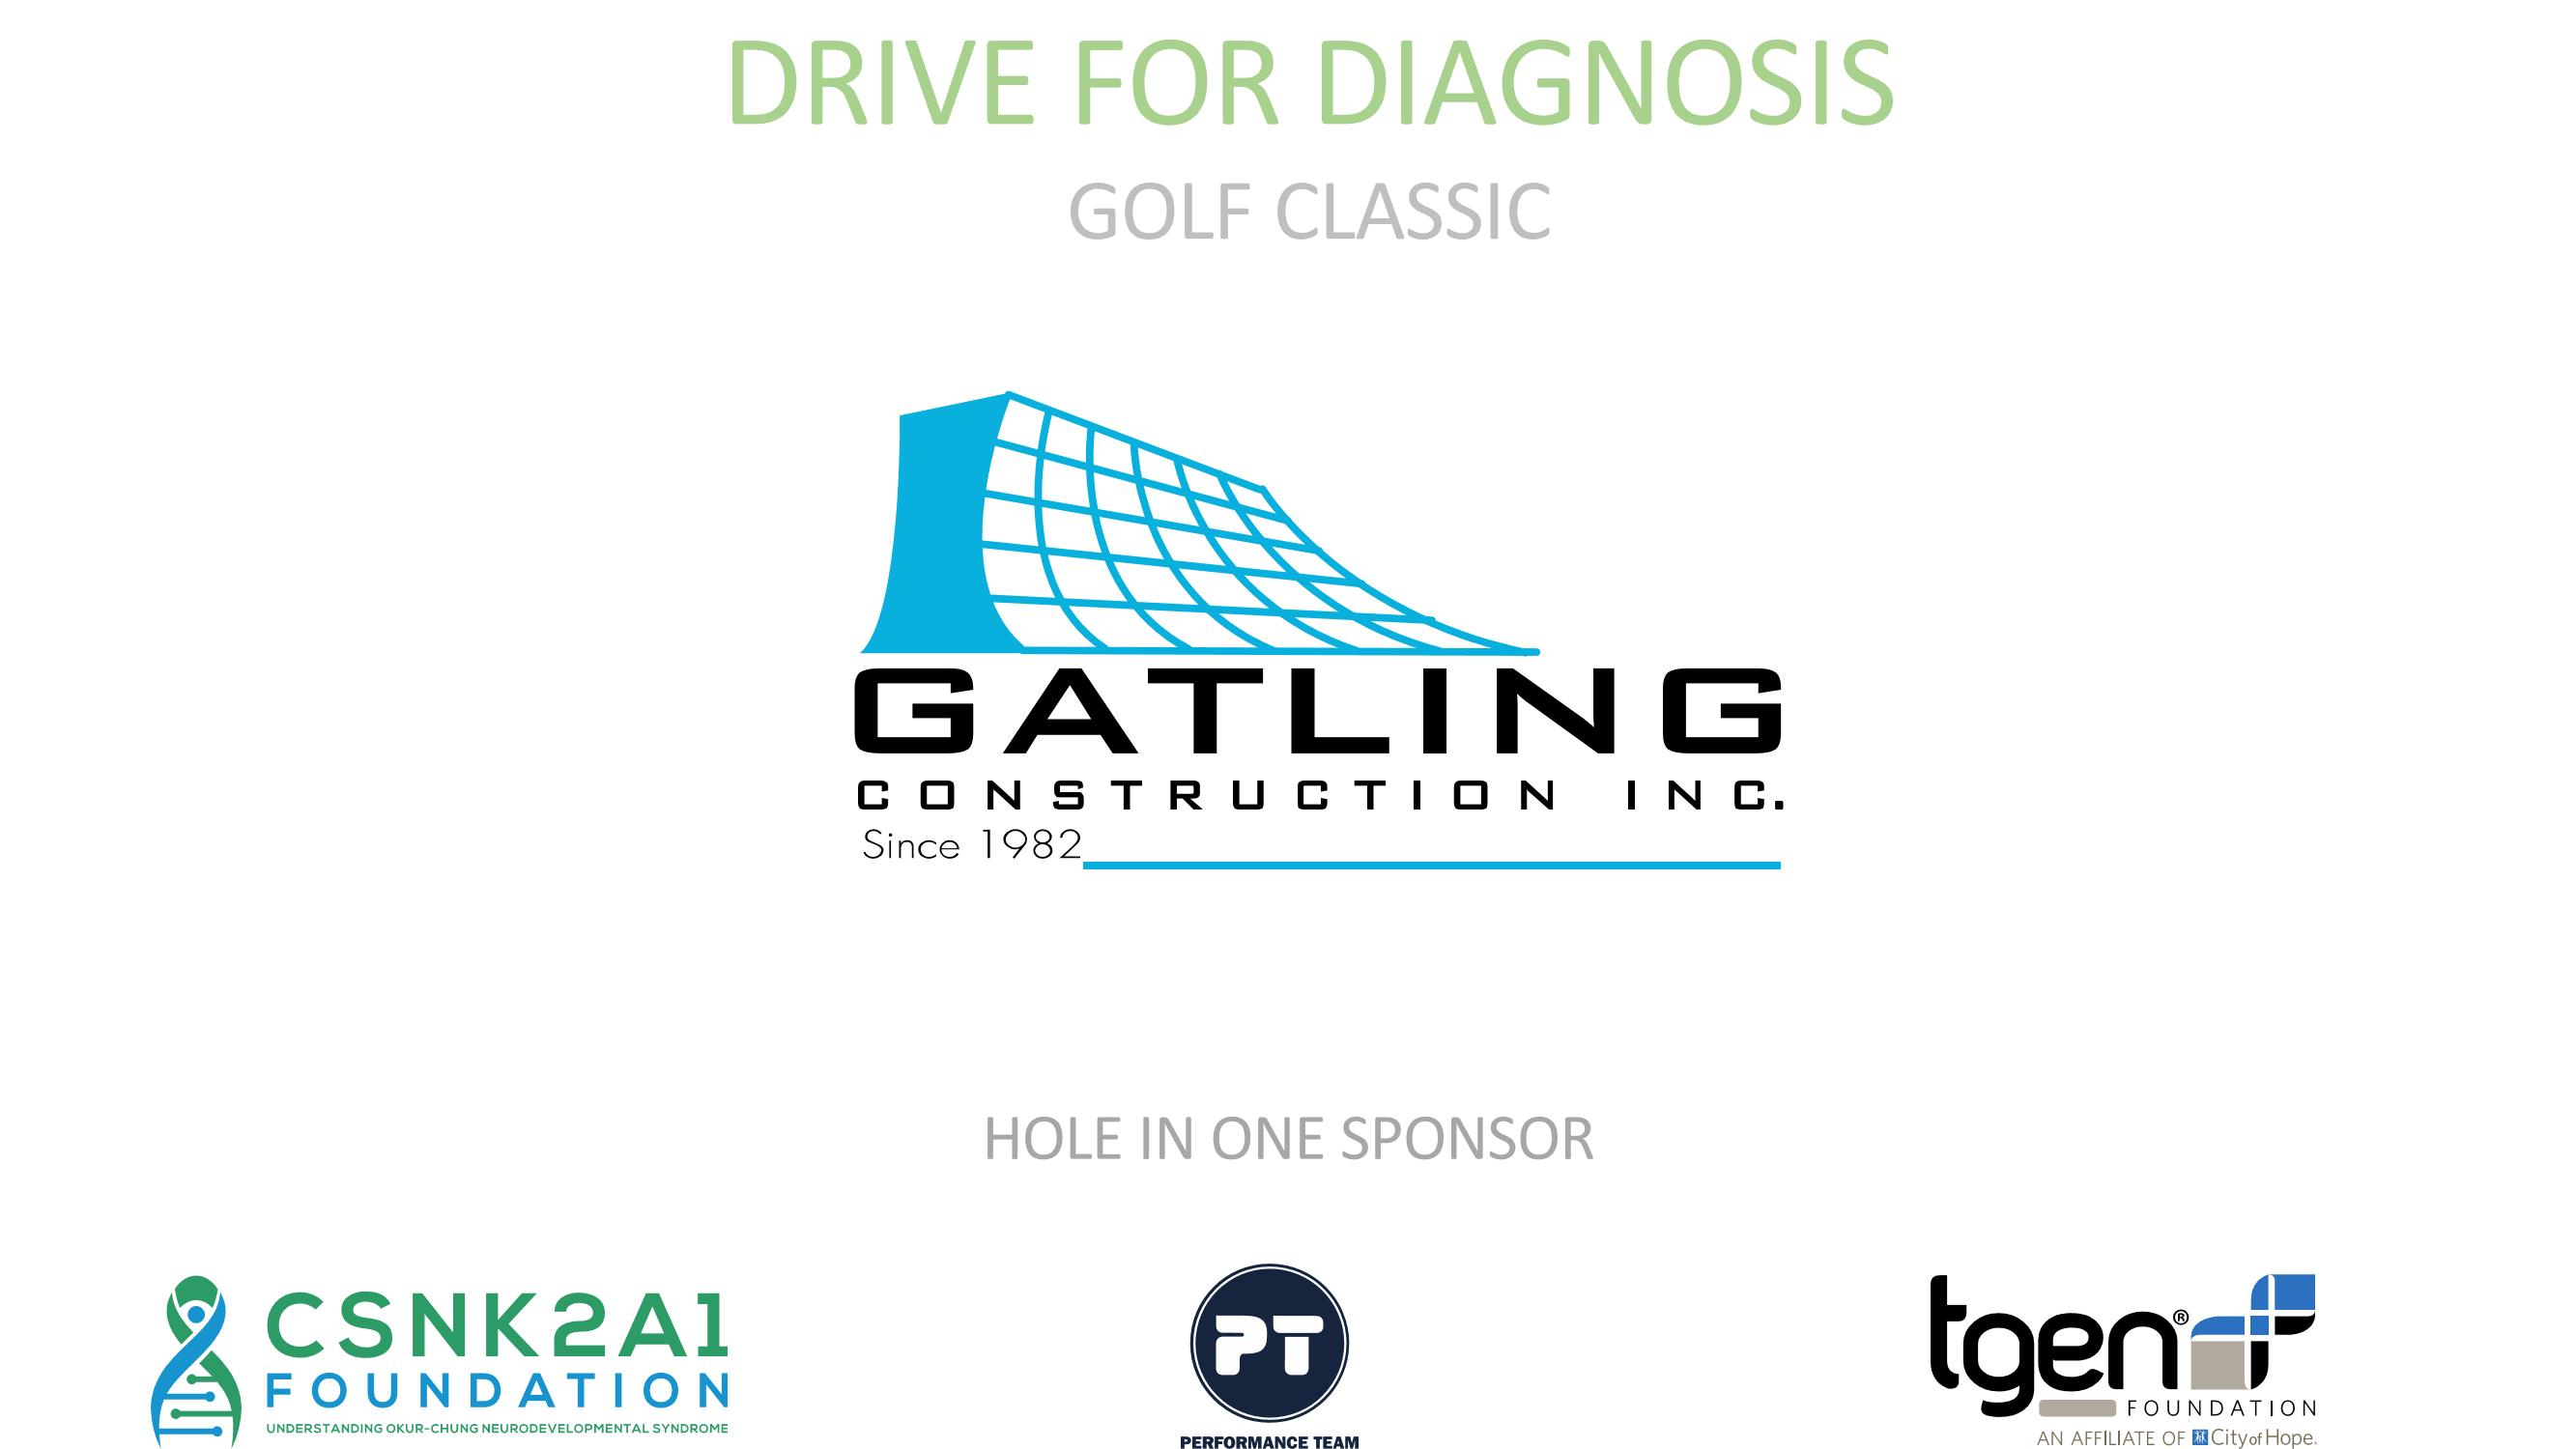 Hole in One Sponsor - Gatling Construction Inc.